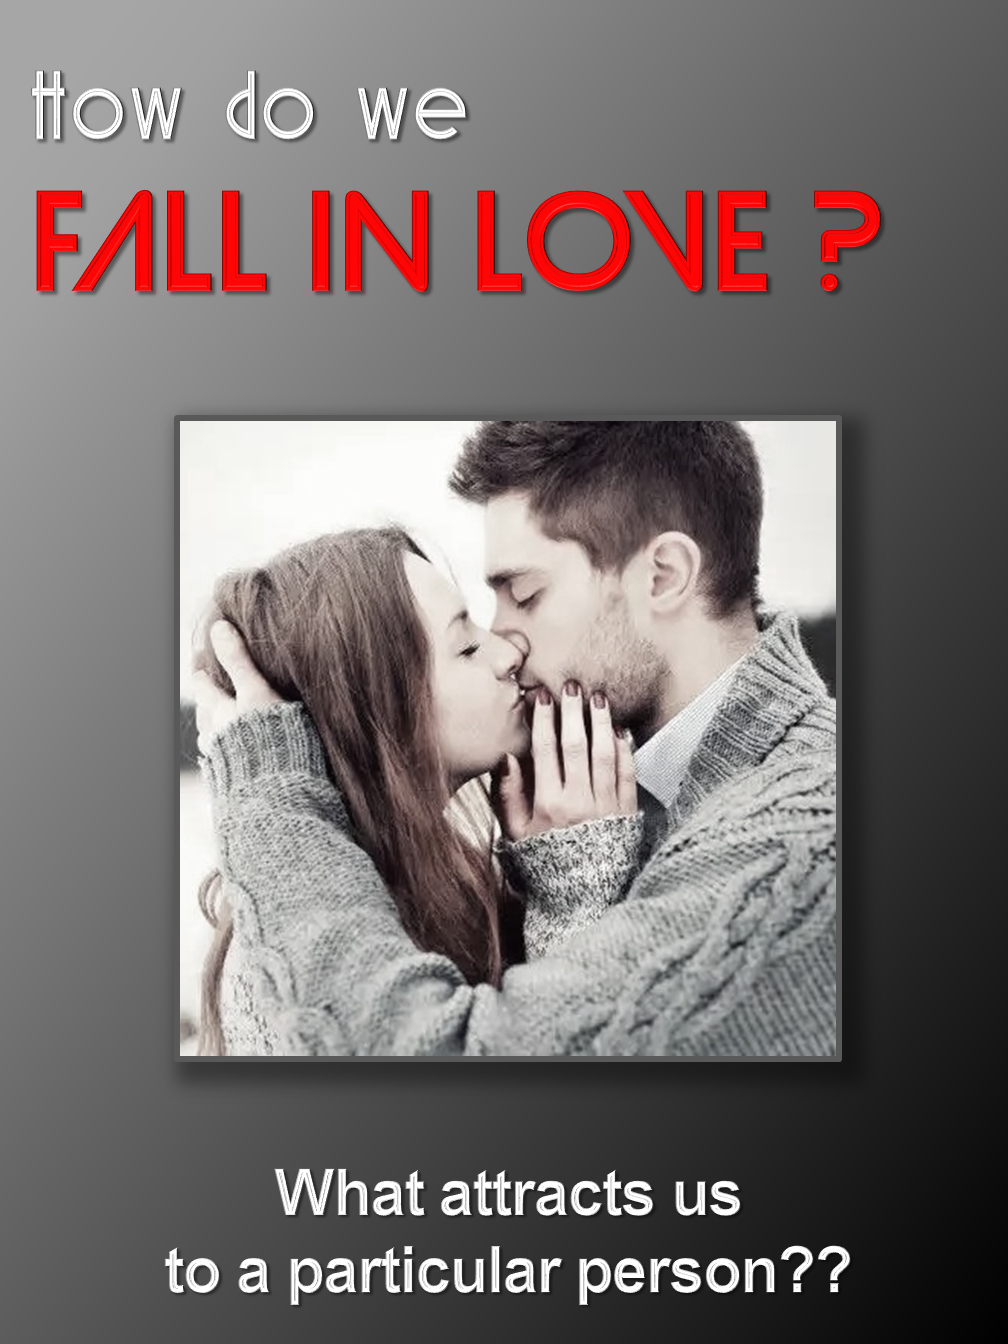 How do we FALL IN LOVE ?